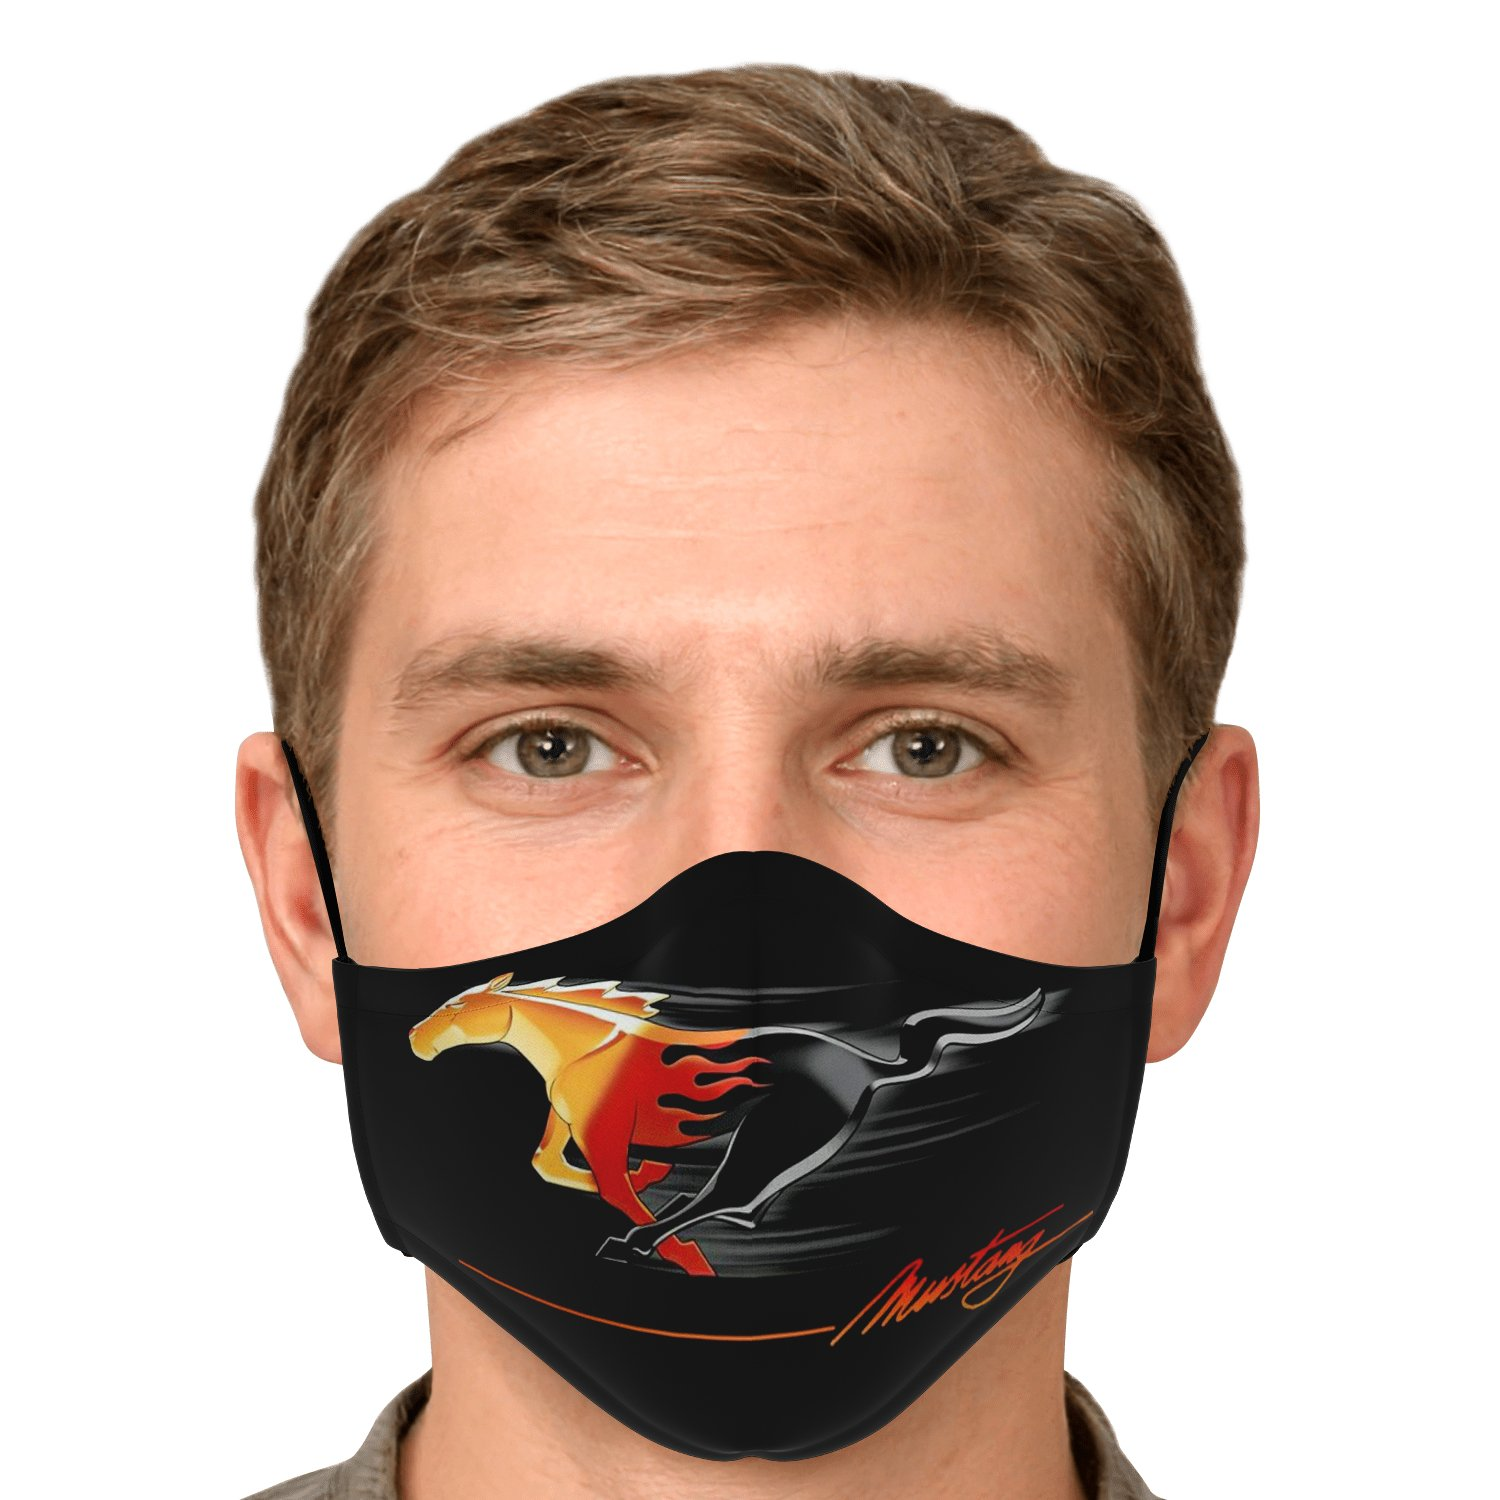 Mustang Face Mask 5